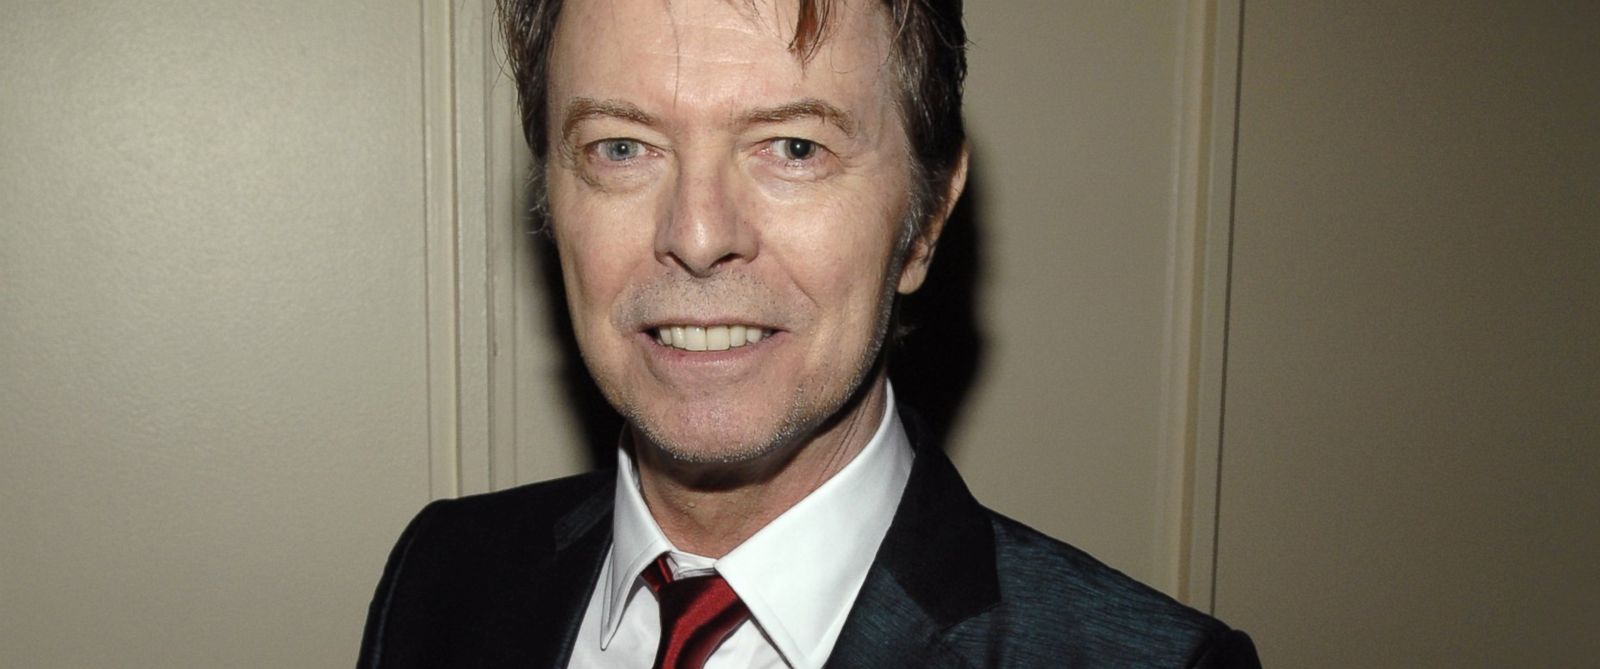 PHOTO:David Bowie is seen at an event in this file photo, April 26, 2007.